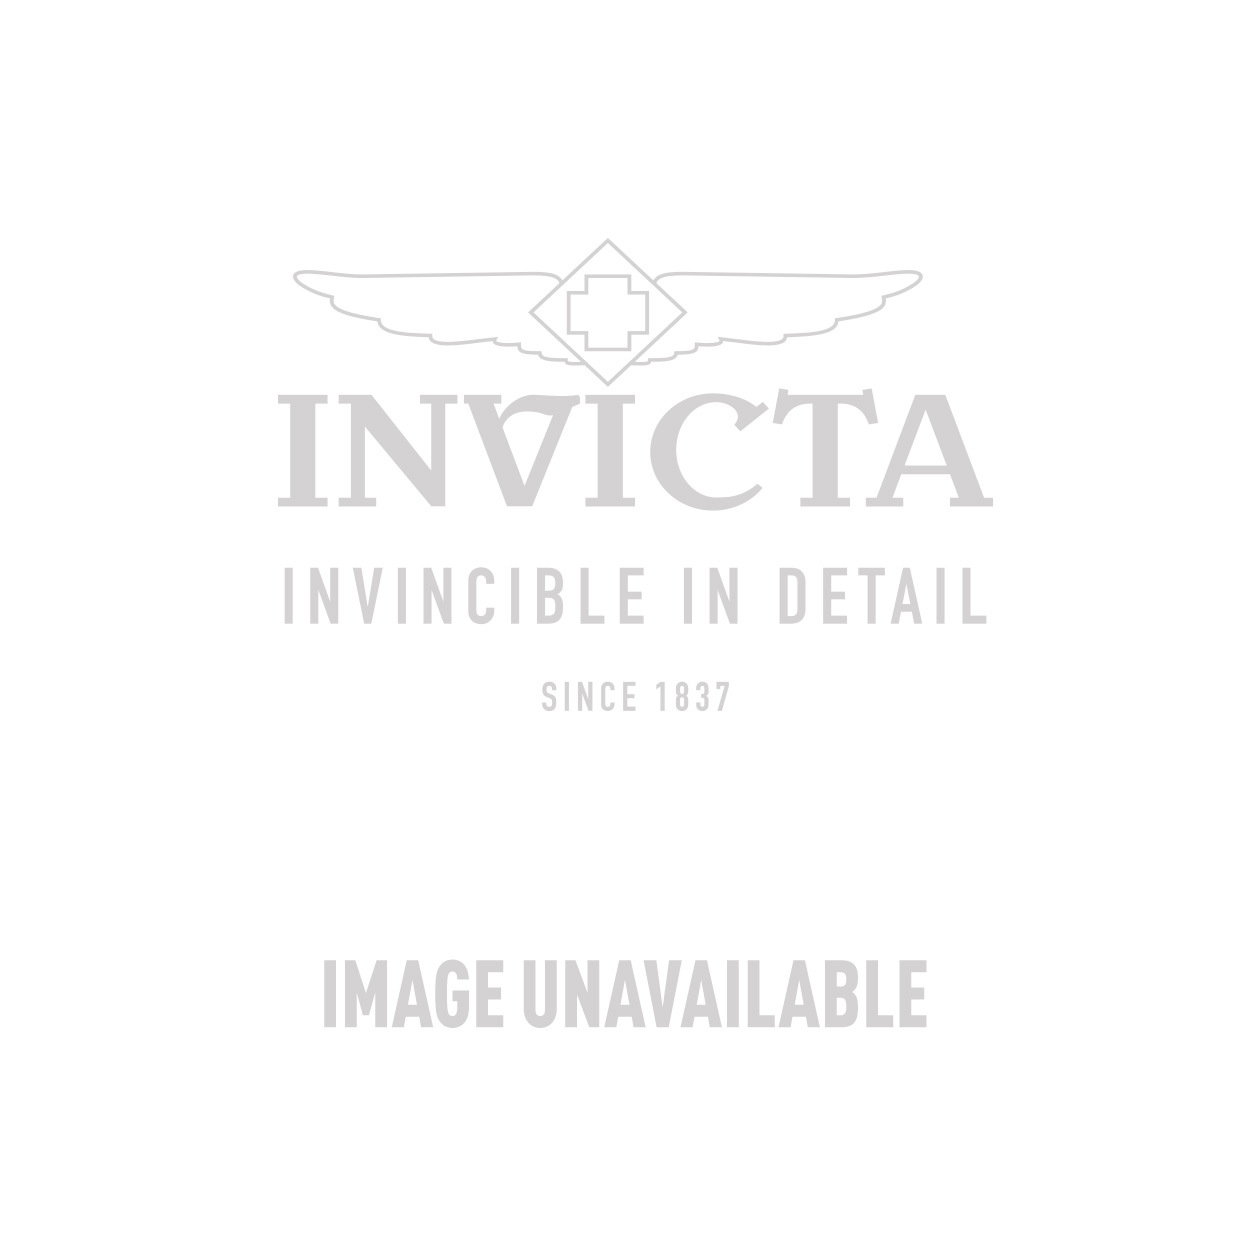 Invicta Reserve Swiss Made Quartz Watch - Gold case with Black tone Silicone and Steel band - Model 21641